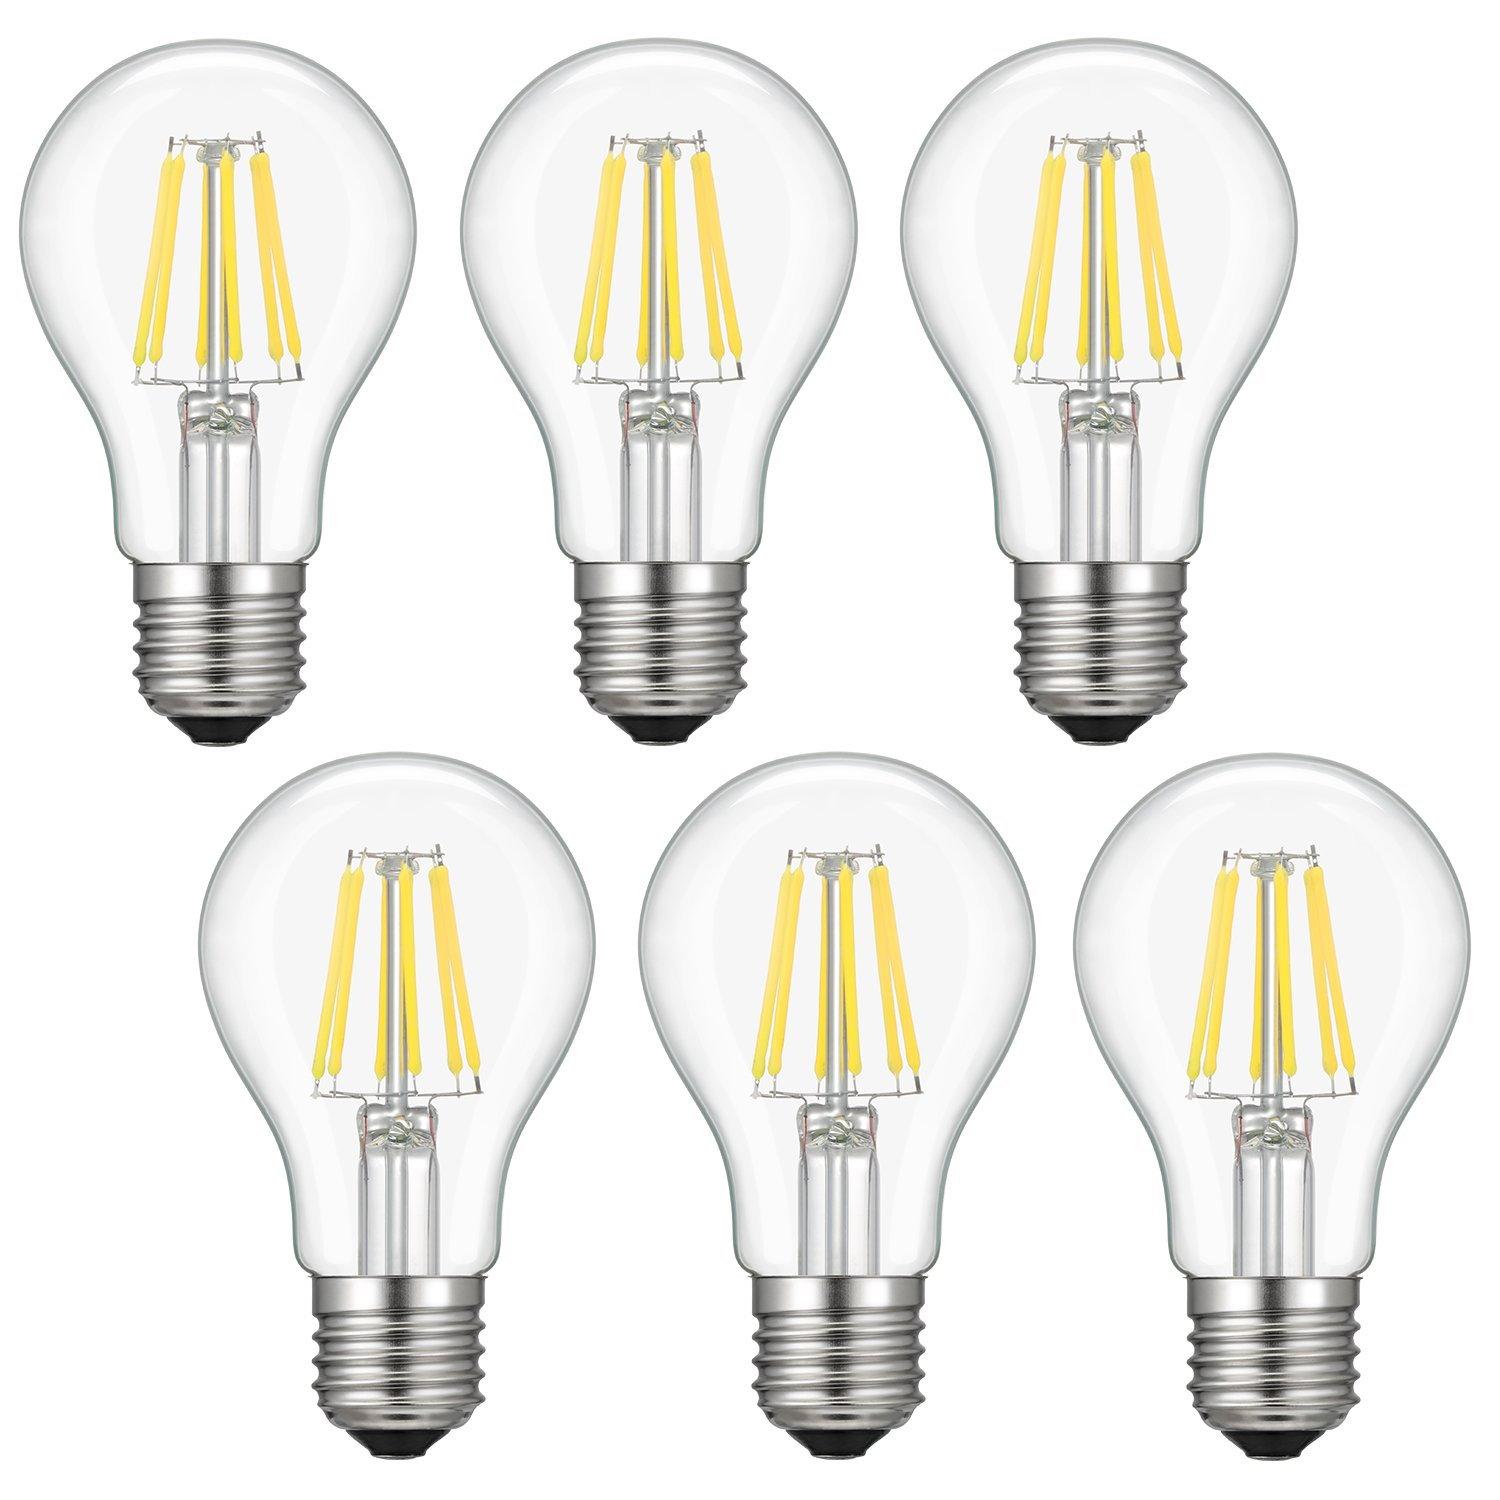 led edison bulb a19 kohree 6w vintage filament light 60w. Black Bedroom Furniture Sets. Home Design Ideas